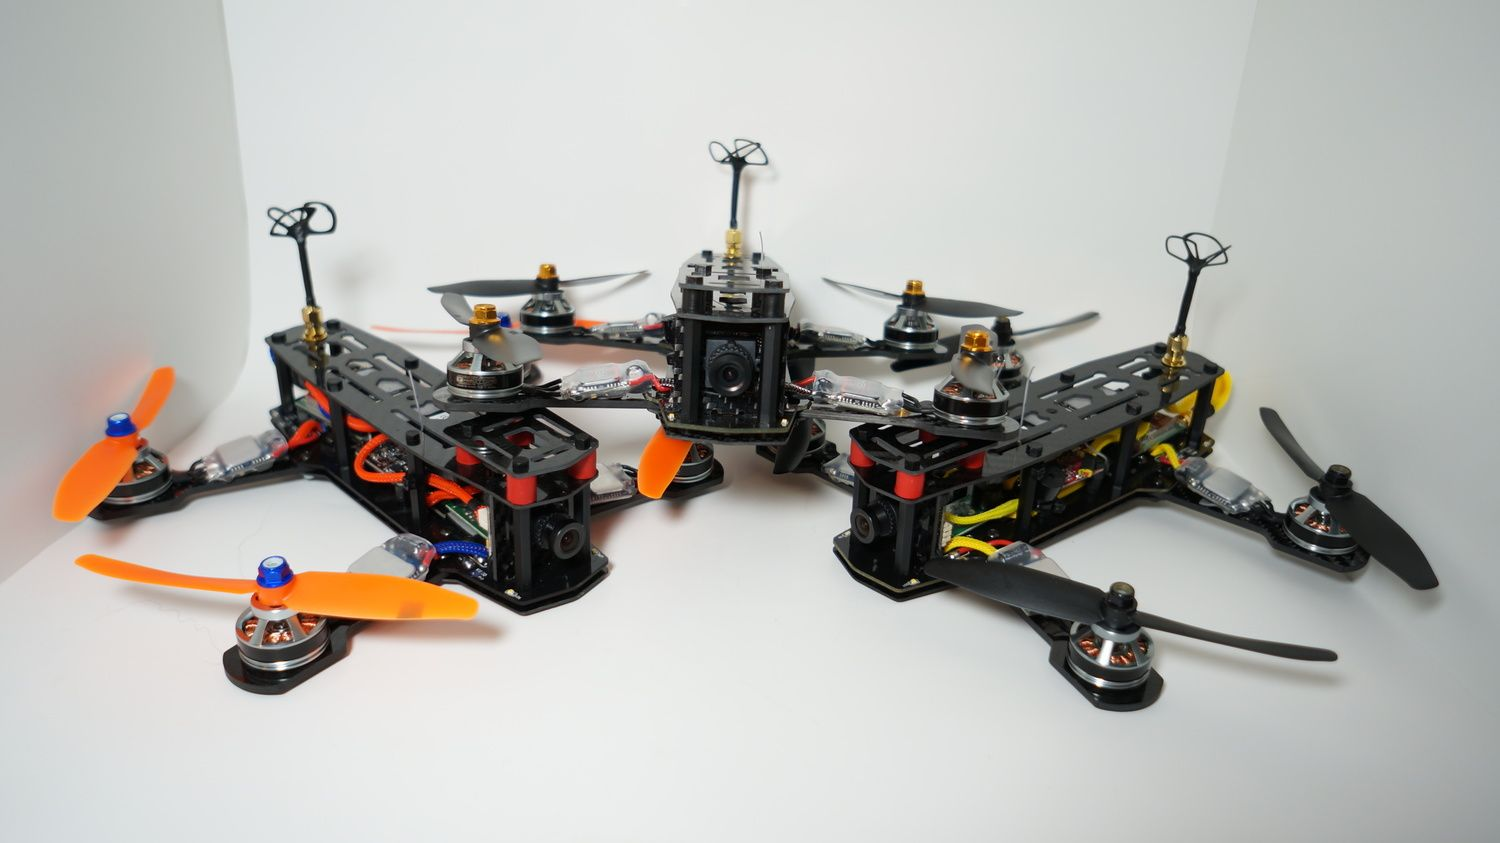 remote control airplanes for sale cheap with 348958671102927177 on 18x18x6cm Mini Four Axis Remote Control Rc Vehicle besides 46cm Remote Control Rc Helicopter With Gyro Stability L131 1 additionally P 61 Black Widow Rc as well Fire Truck Toys further Remote Control Cars Shop Buy Rc Cars Radio Control.